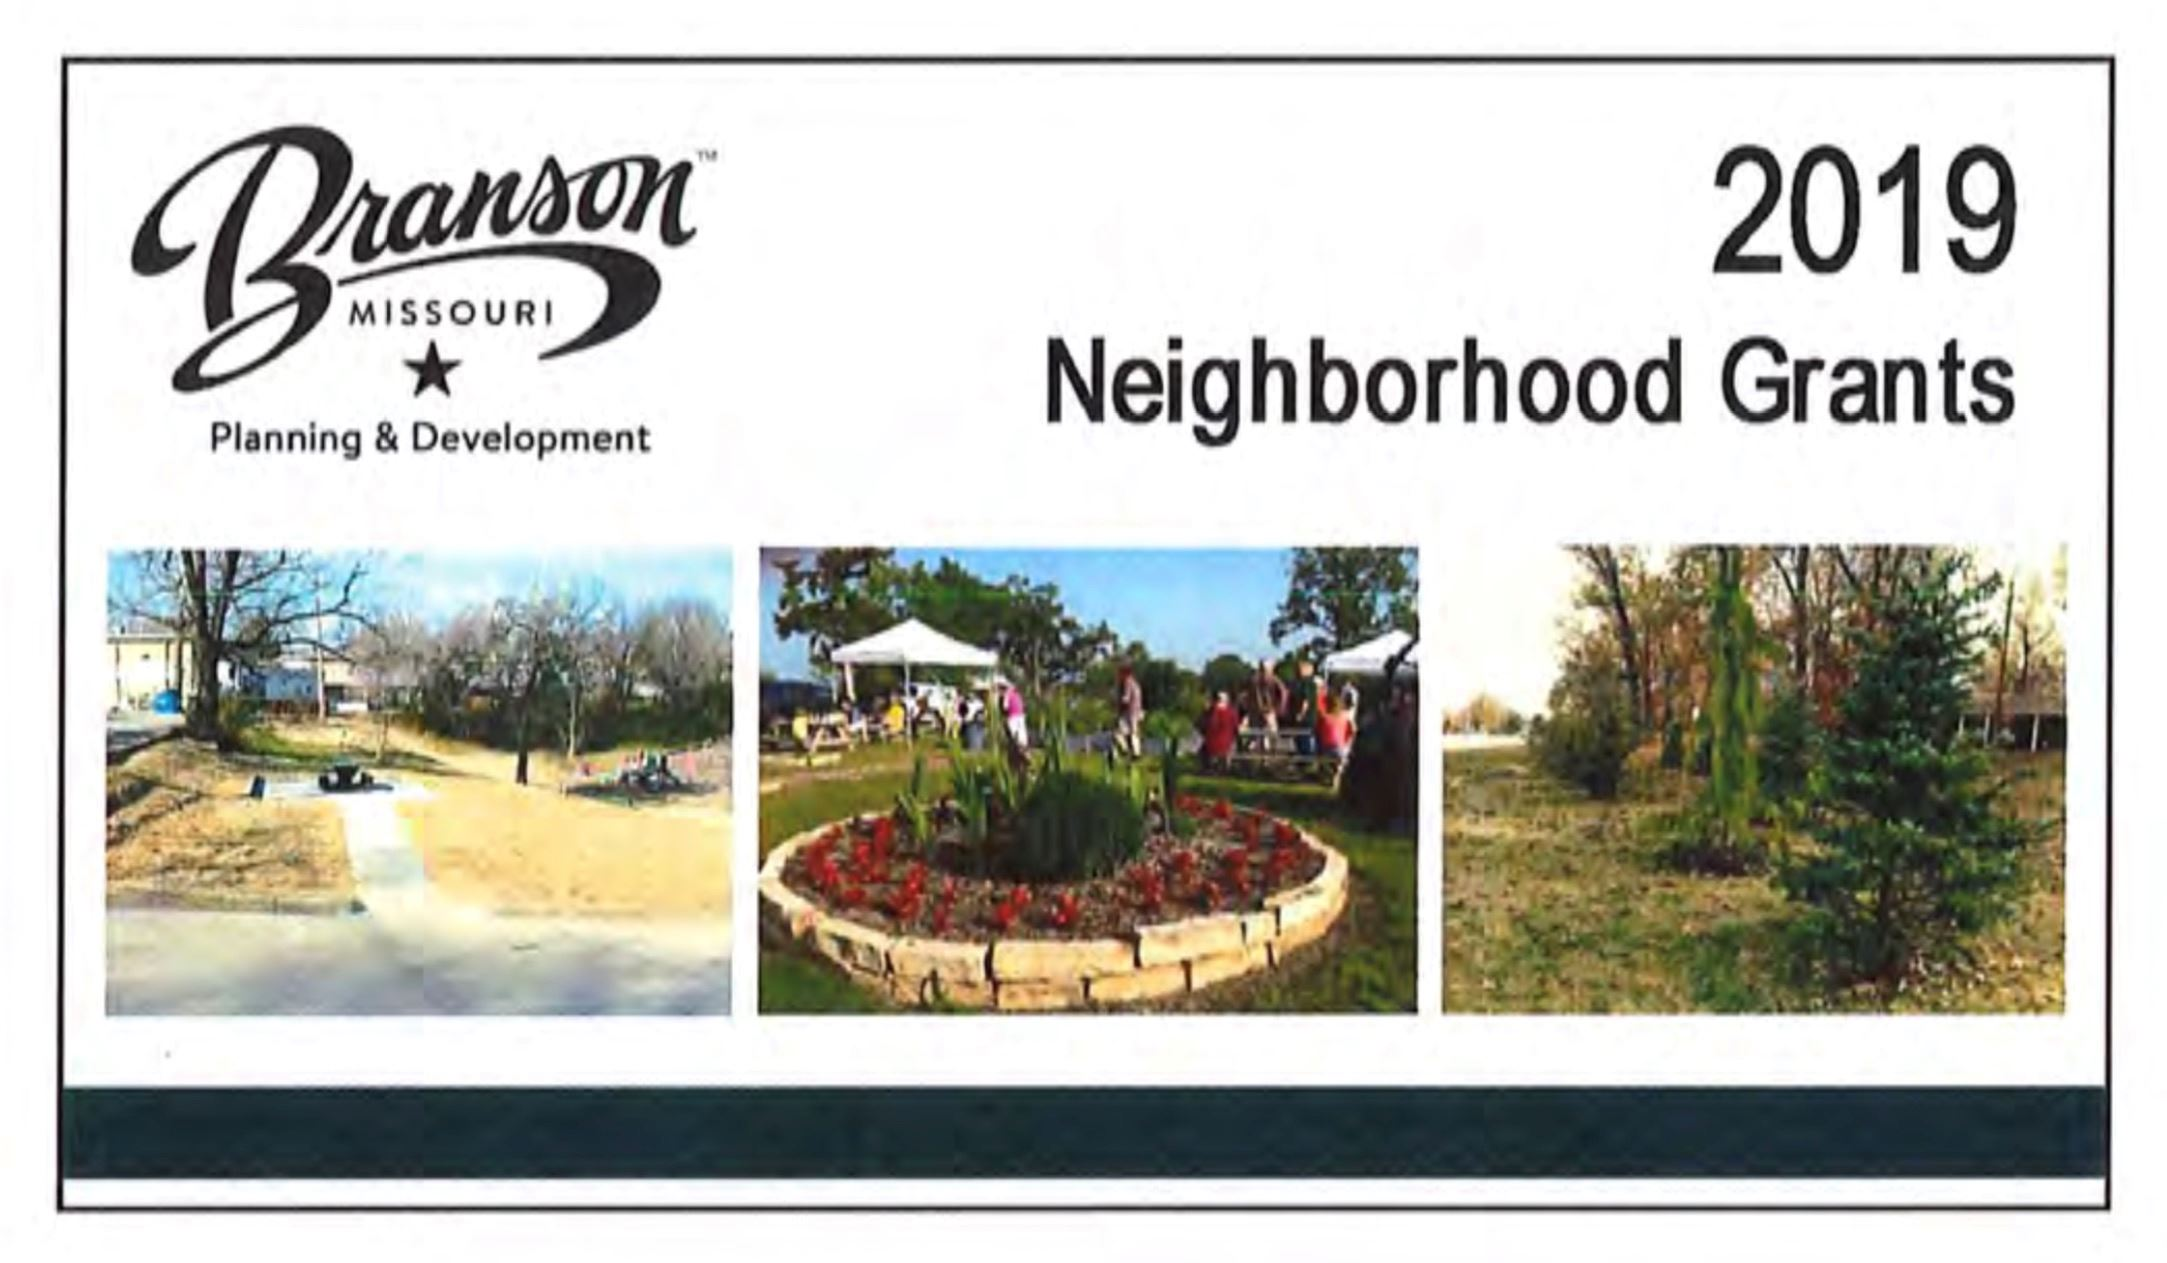 Neighborhood Grants 2019 image